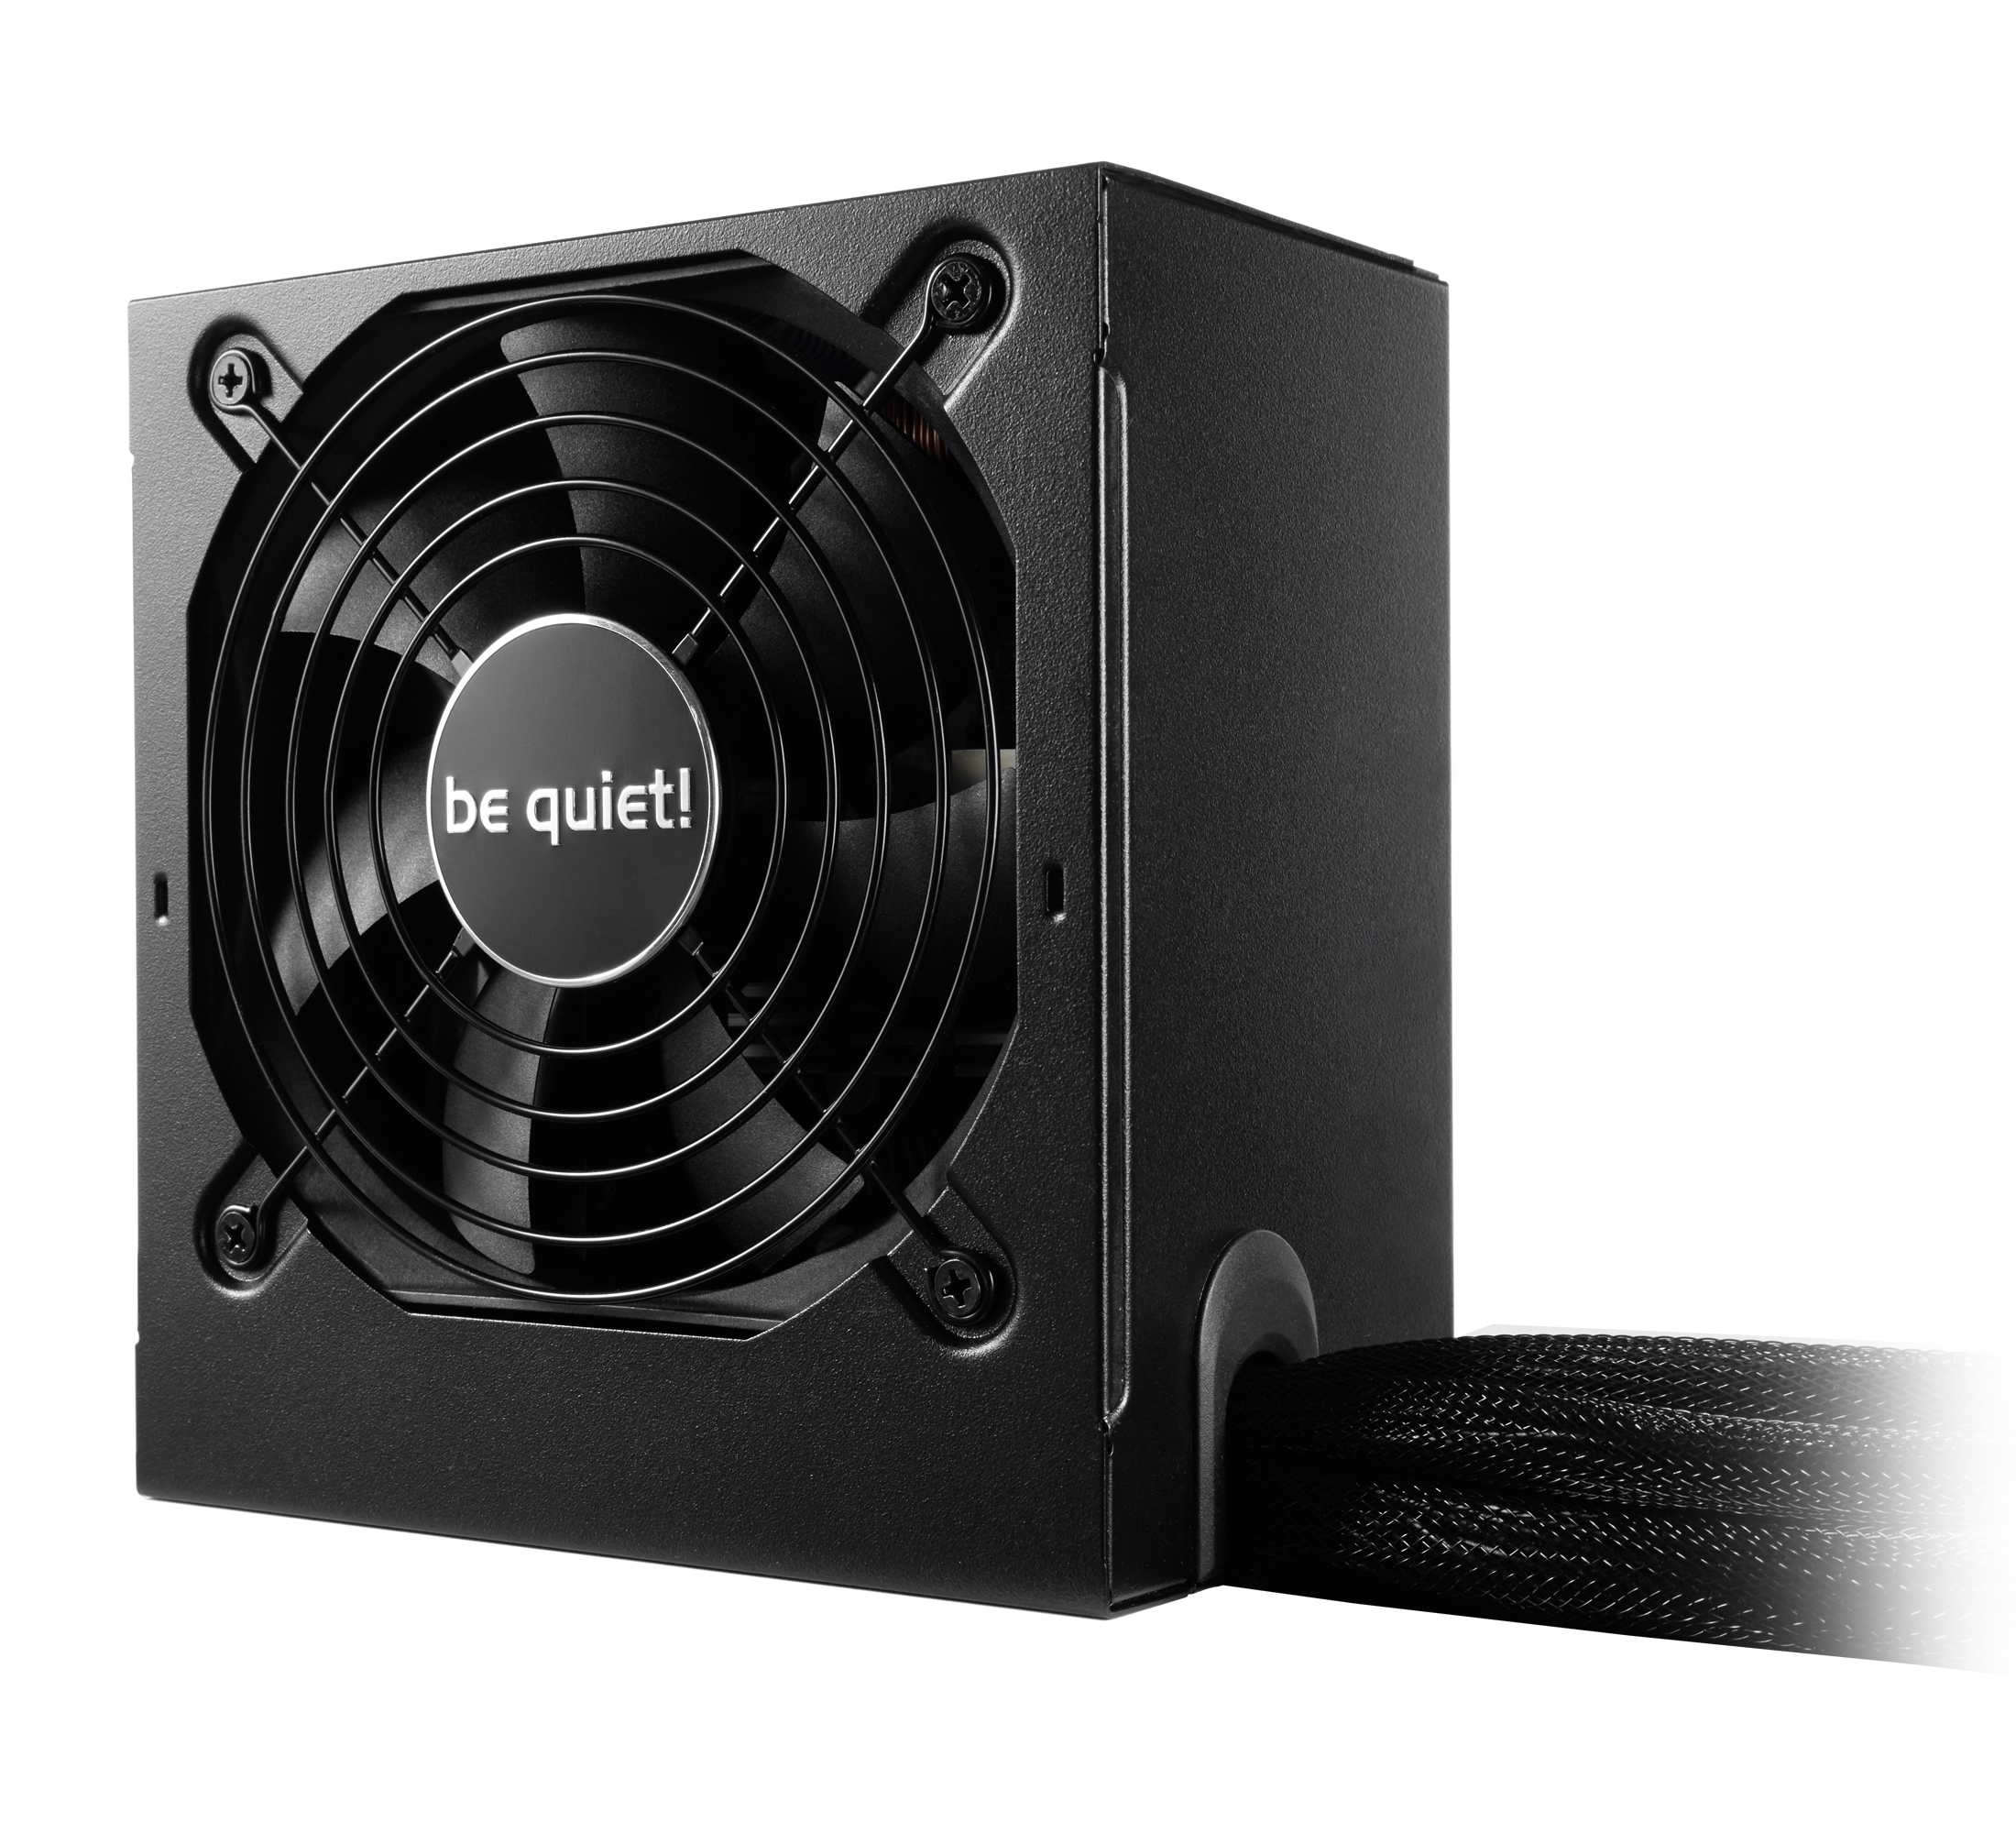 be quiet! System Power 9 600W, 80+ Bronze, ErP, Energy Star 6.1 APFC, Sleeved, 4xPCI-Ex, 6xSATA, 2xPATA, DC-DC // S9-600W